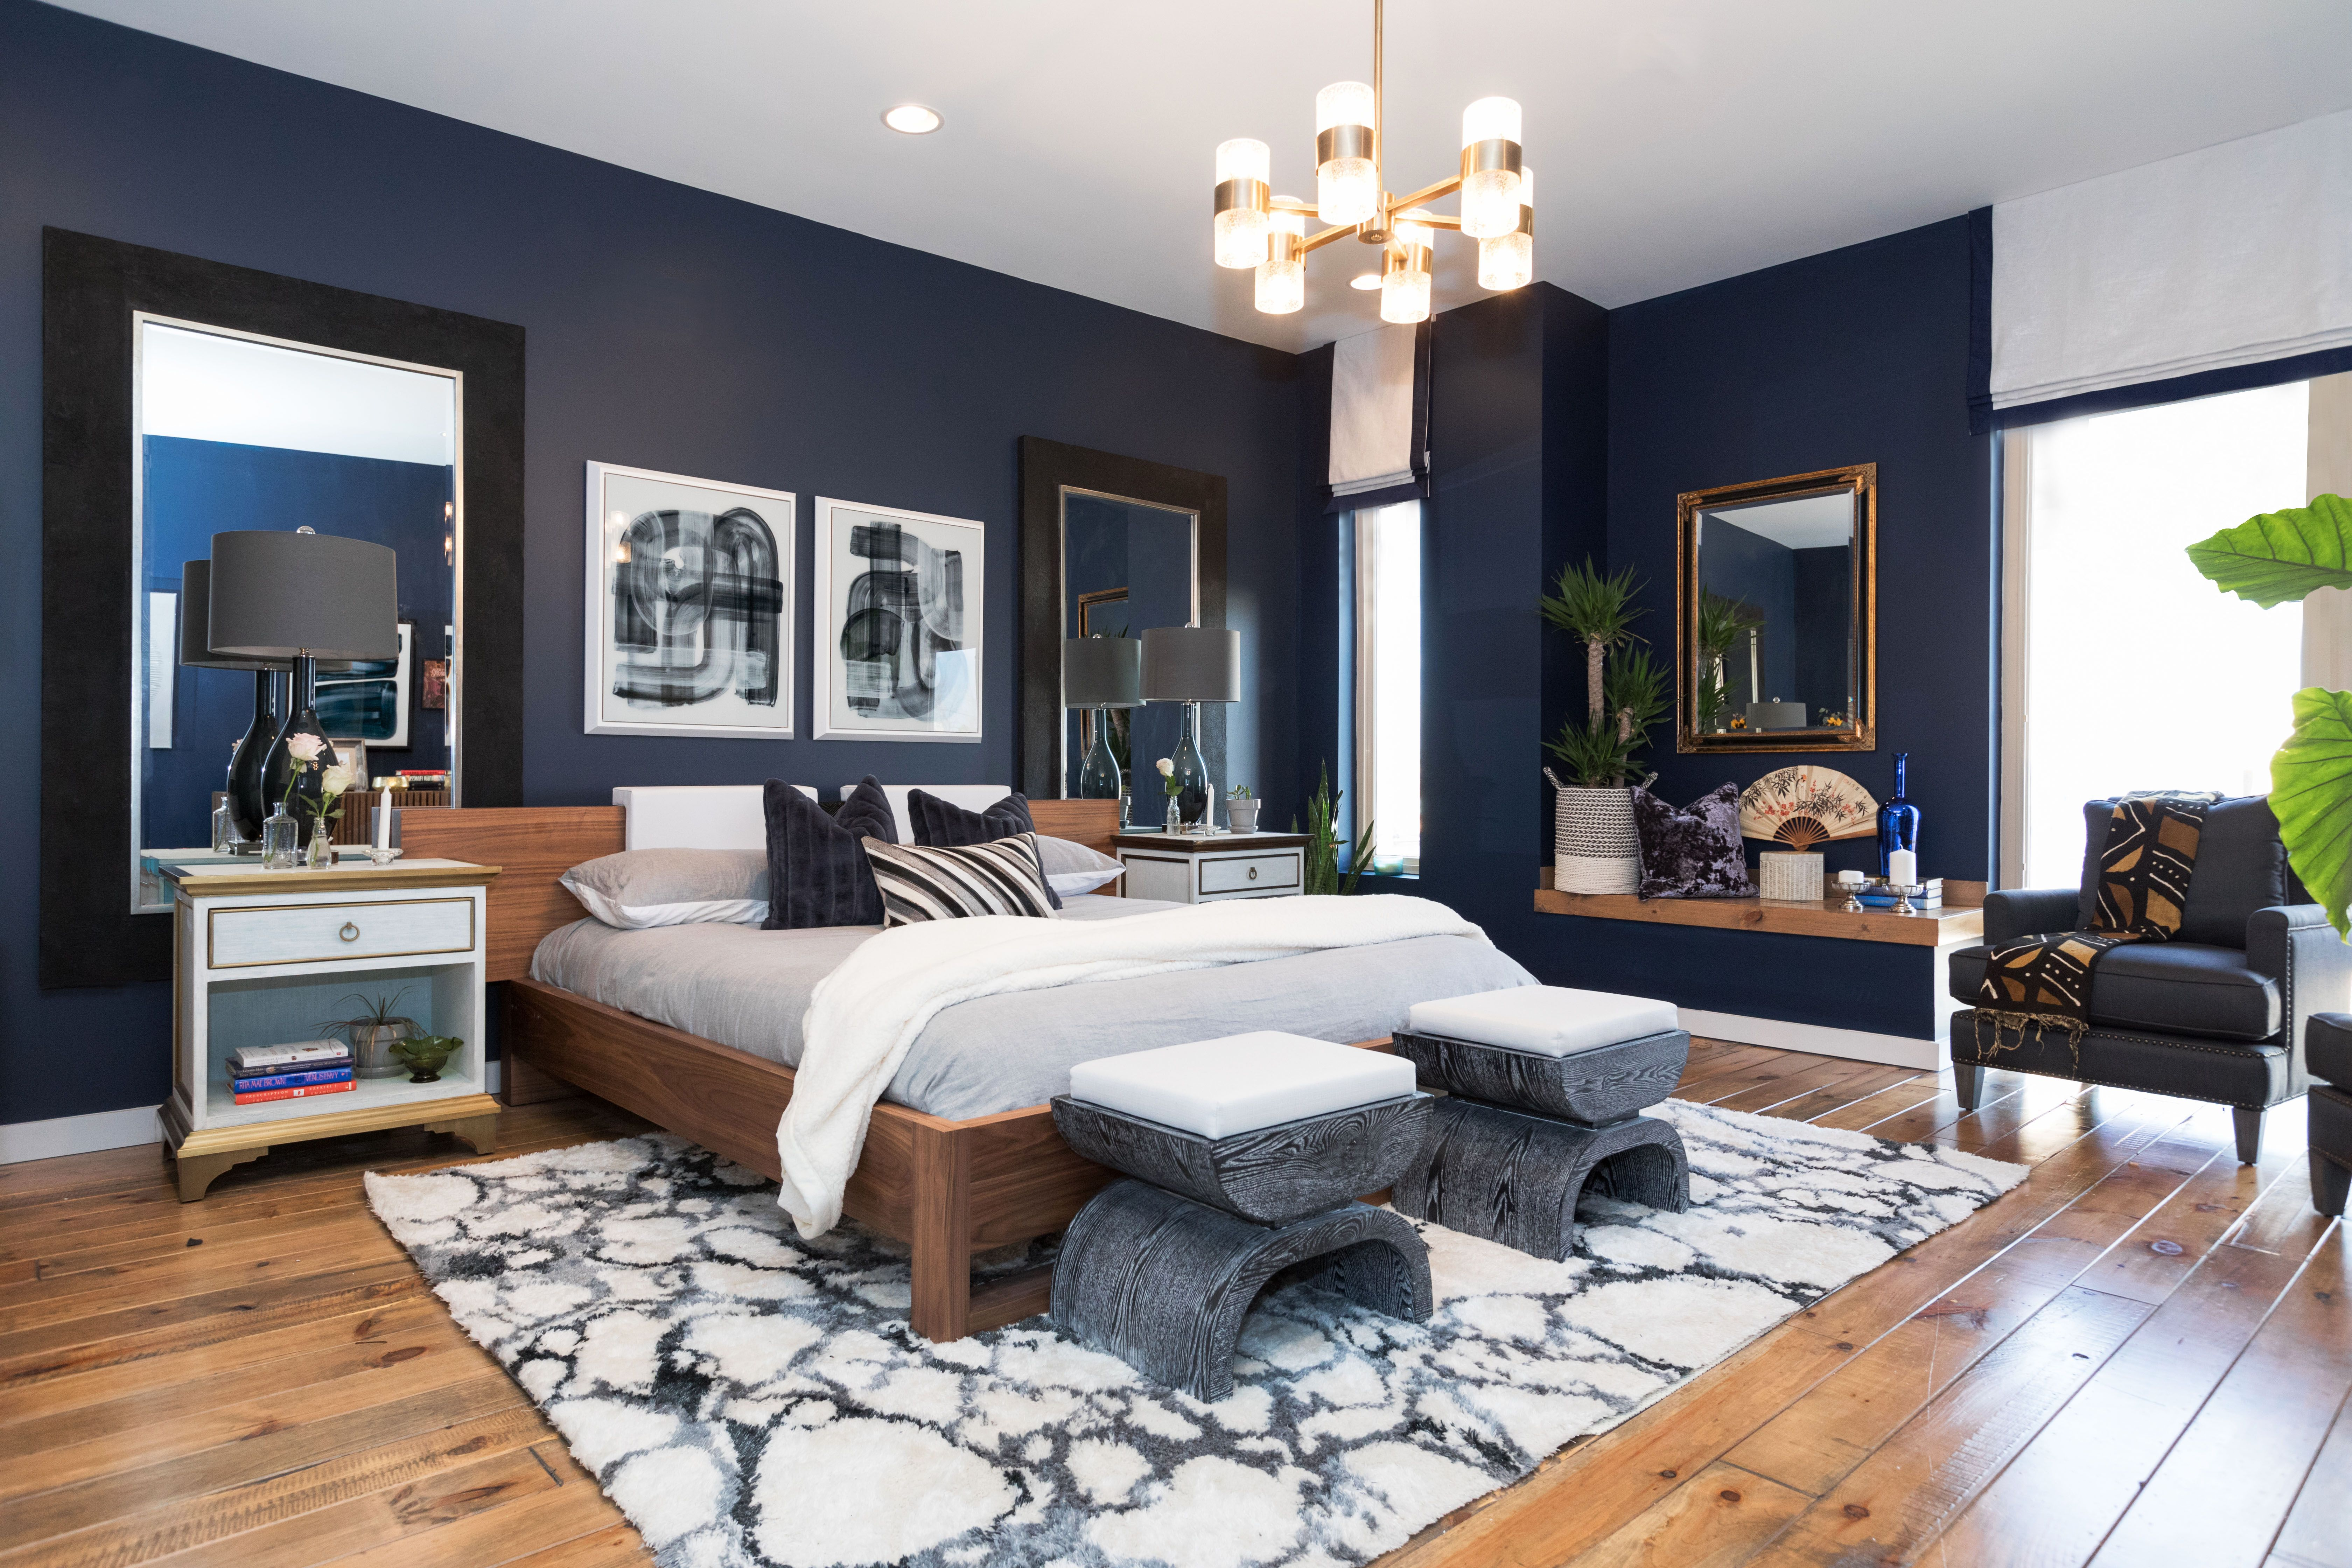 This Master Bedroom Has Modern Art A Dark Wall Color A Shag Rug And Gold Accents To Cre Blue Master Bedroom Master Bedroom Colors Bedroom Paint Colors Master